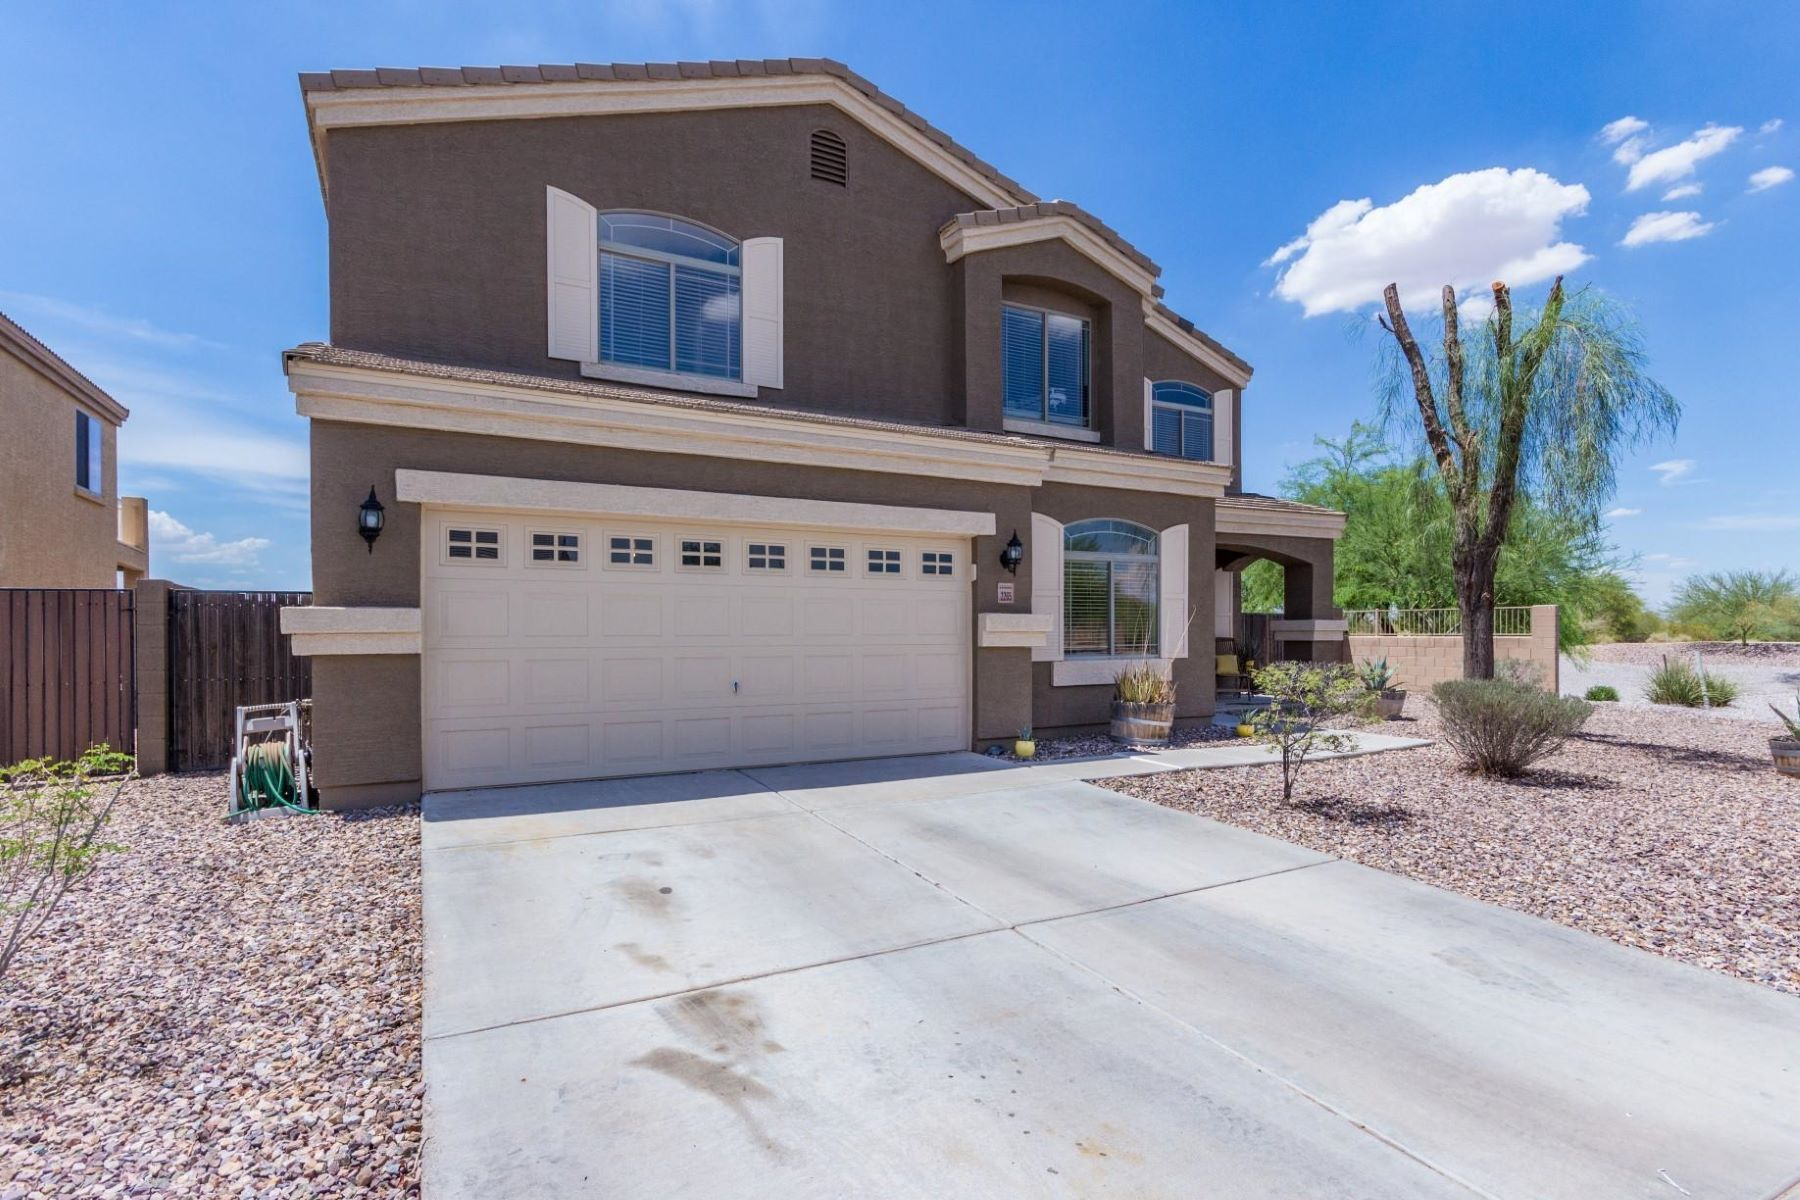 Single Family Homes for Active at Mission Valley 2265 N MAGDELENA PL Casa Grande, Arizona 85122 United States